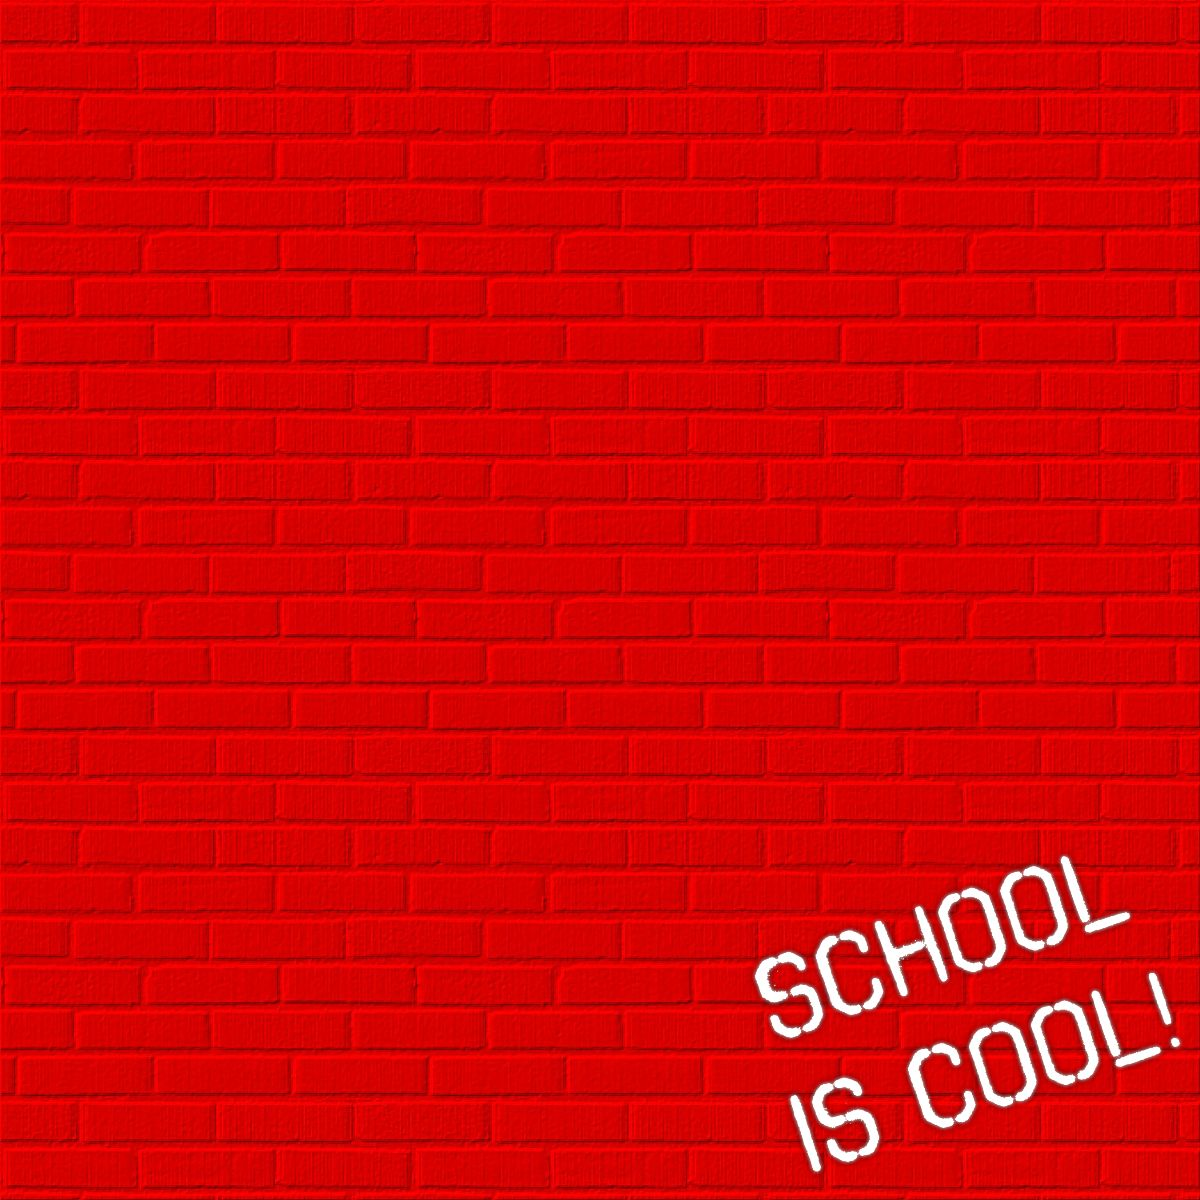 Back to School Backgrounds Digital Scrapbooking at 1200x1200